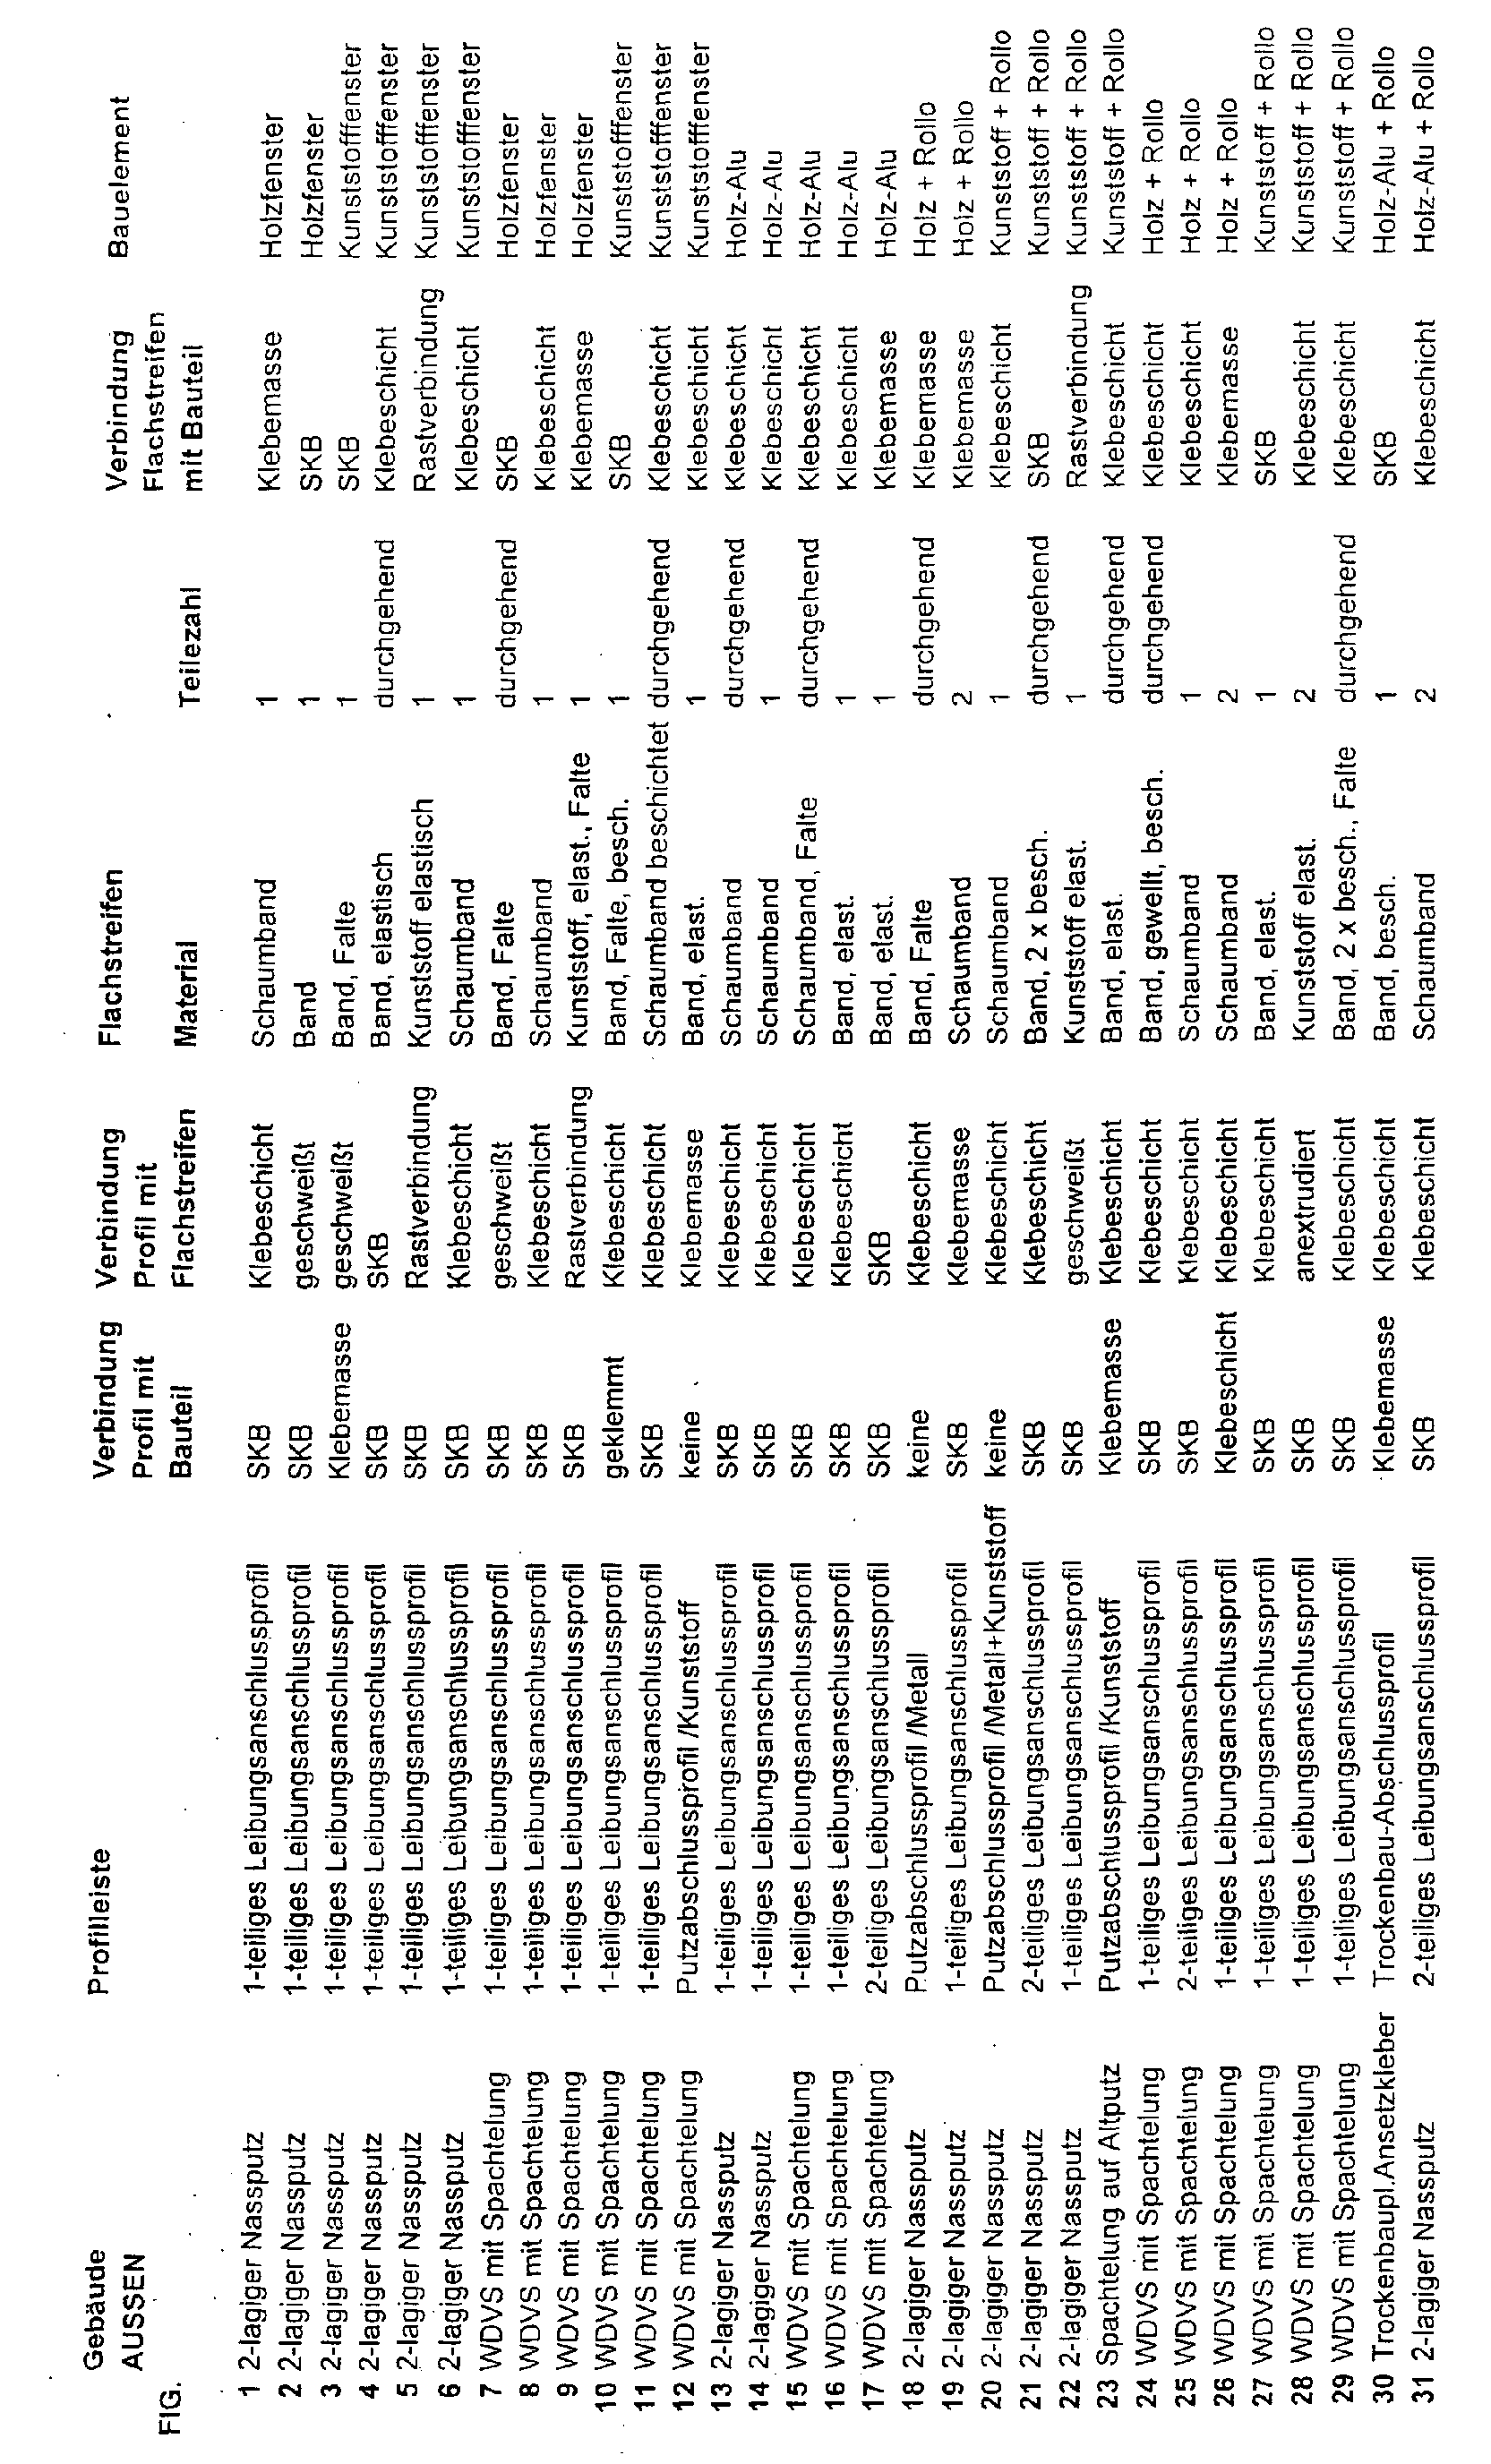 ep1707727a2 - sealing arrangement and method for producing a seal